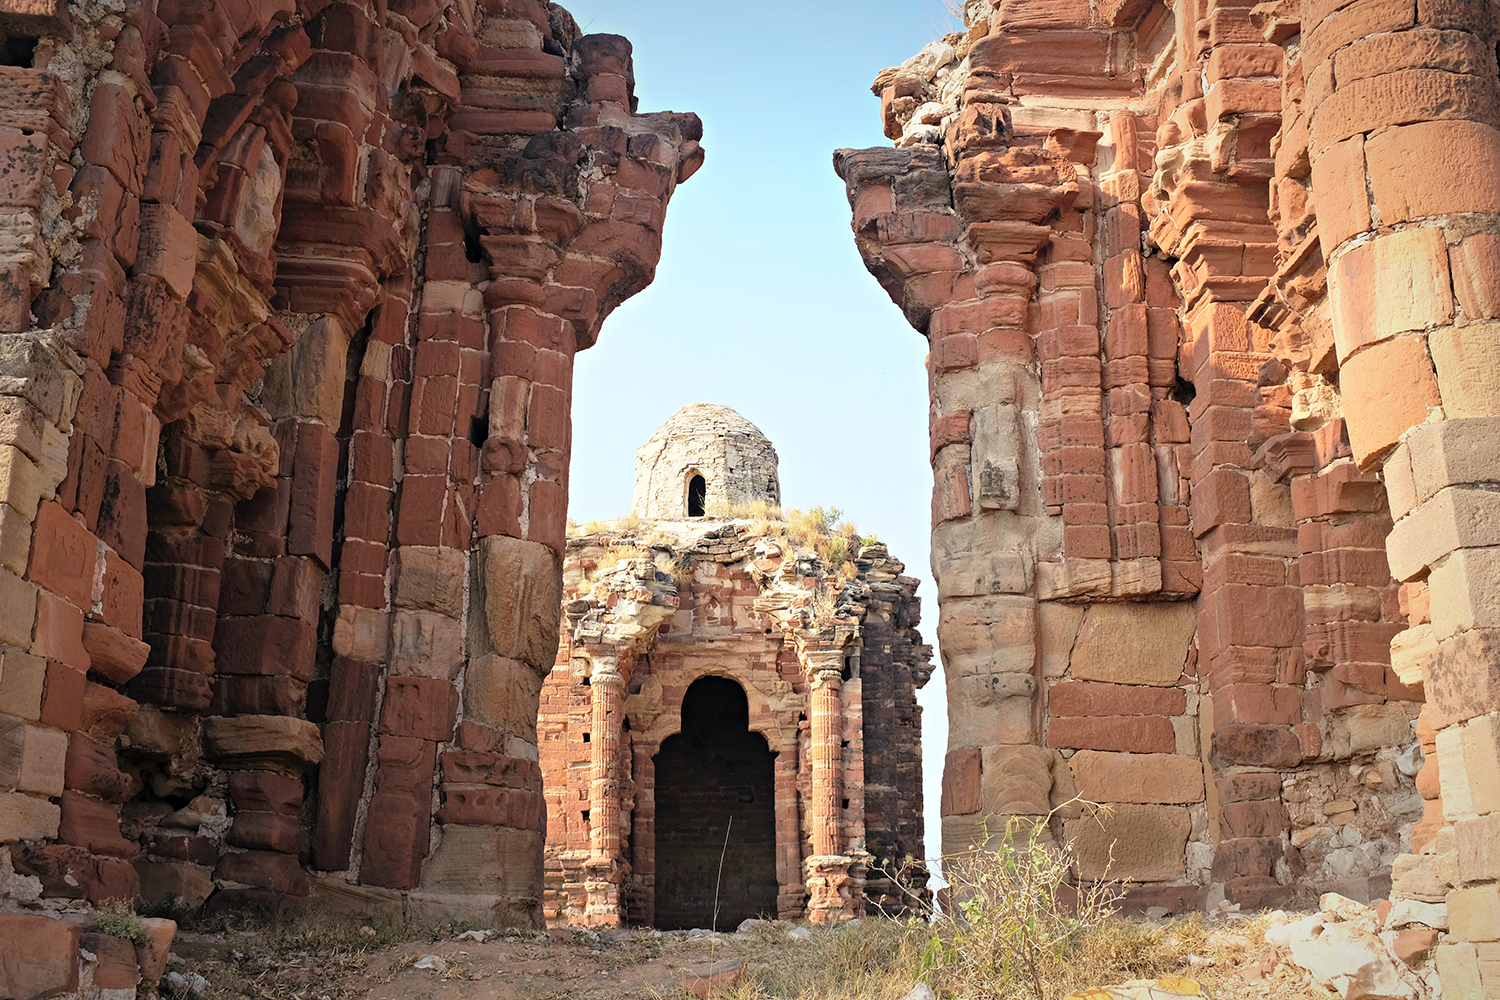 The temples in Malot are in dire need of repairs